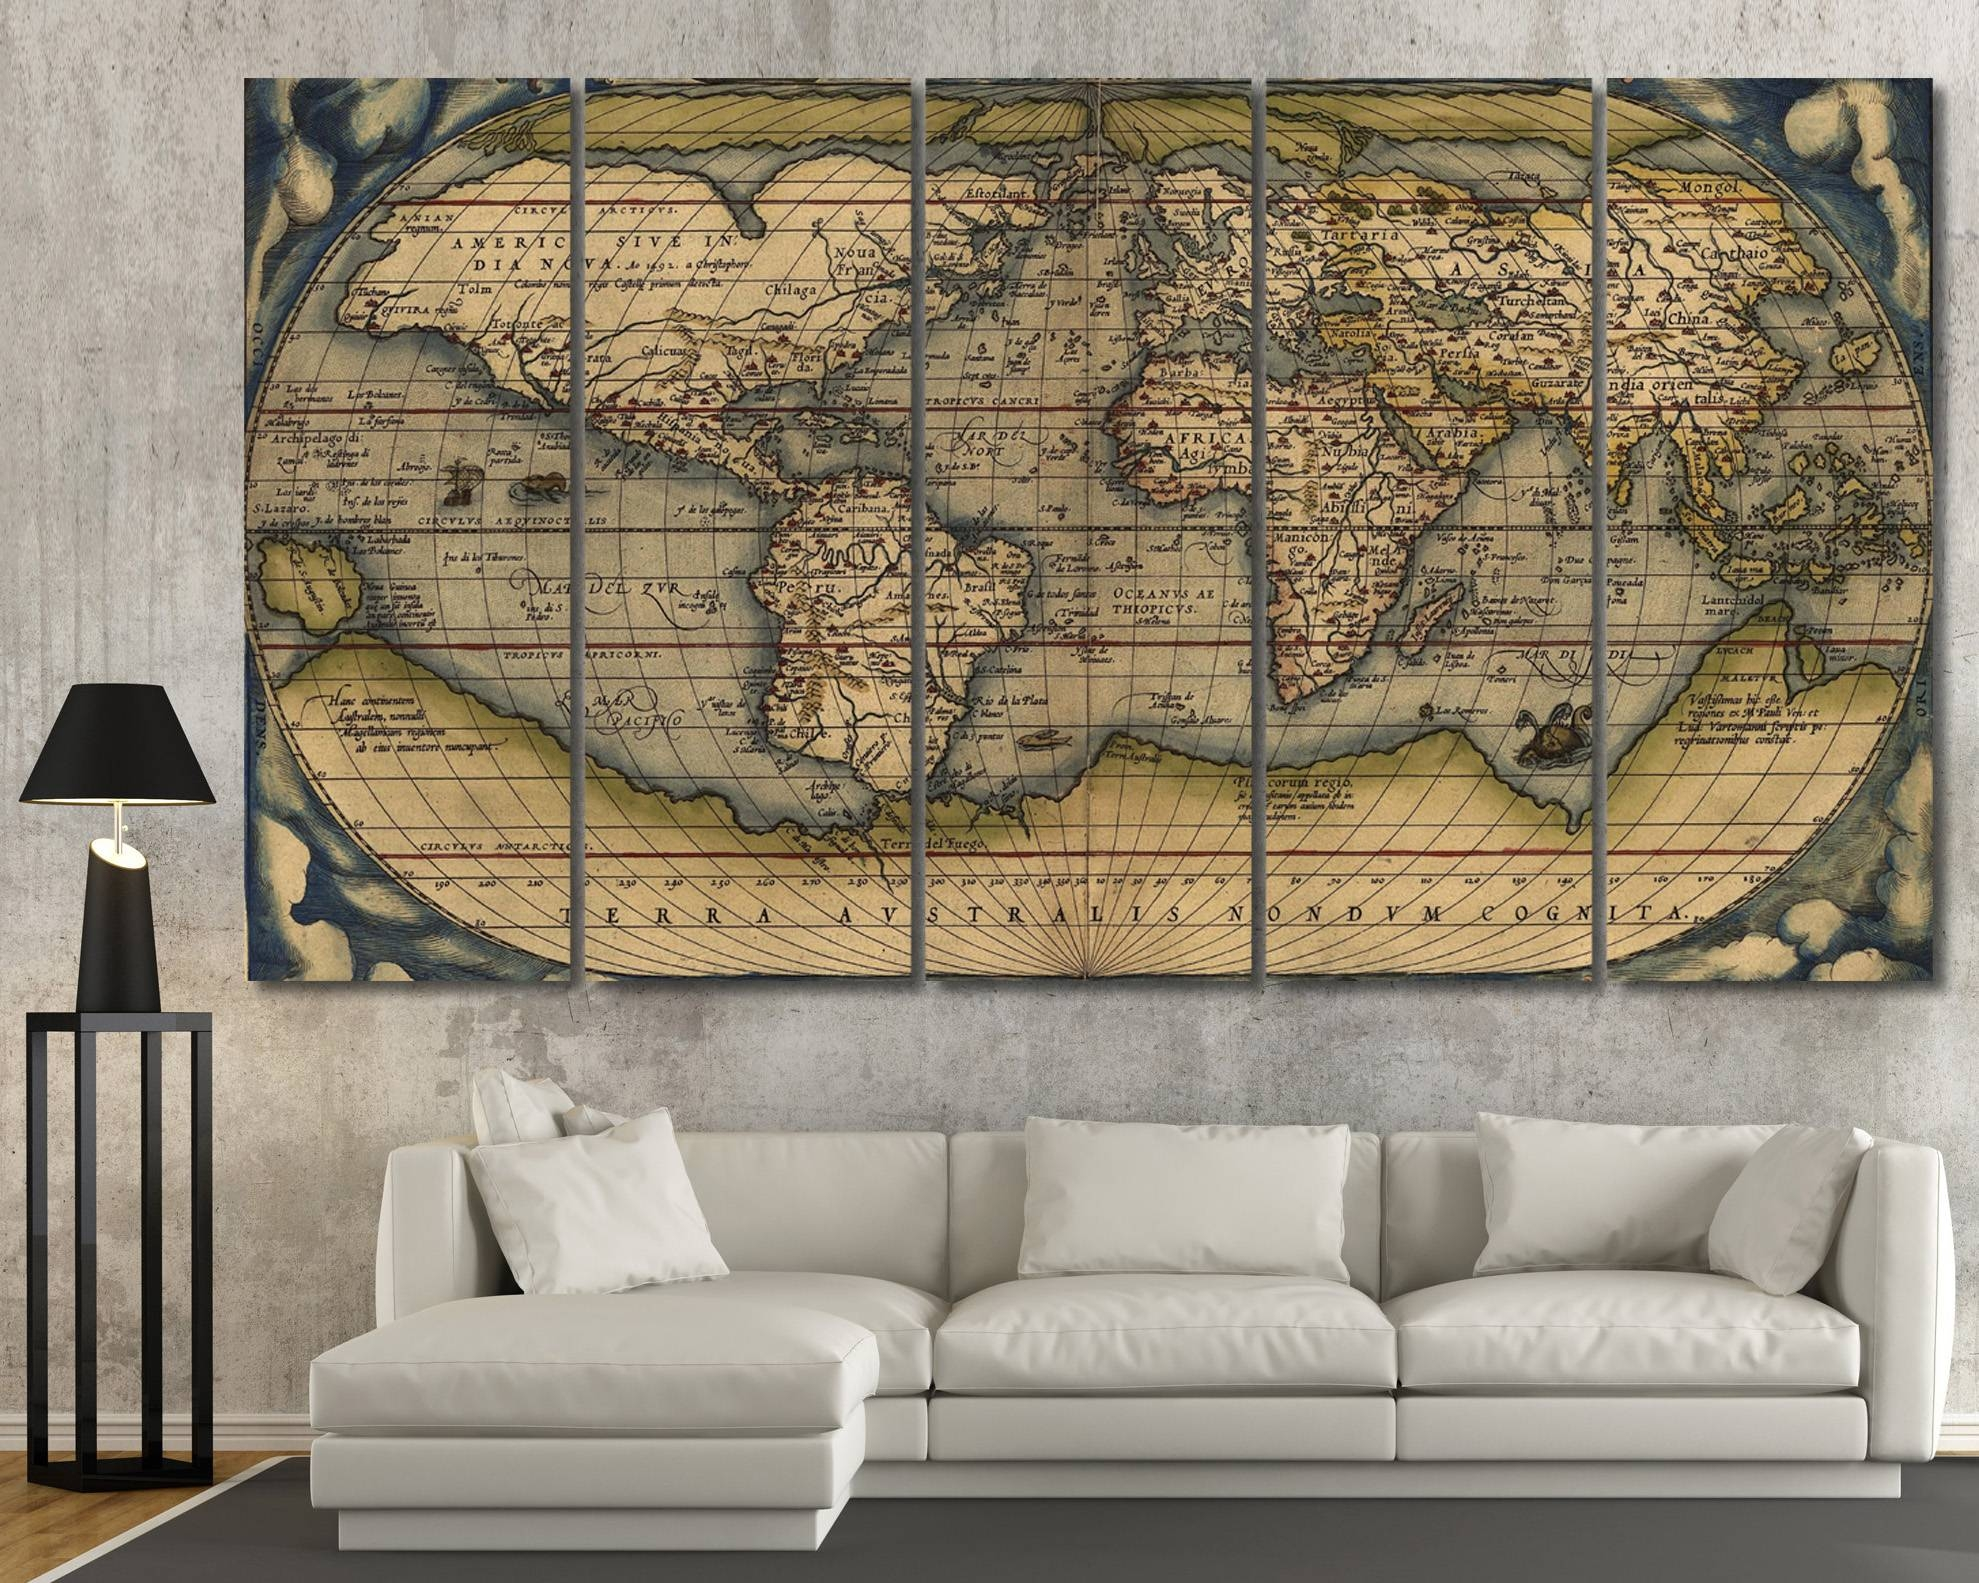 Large Vintage Wall Art Old World Map At Texelprintart Throughout Most Recently Released Map Wall Art (View 3 of 25)